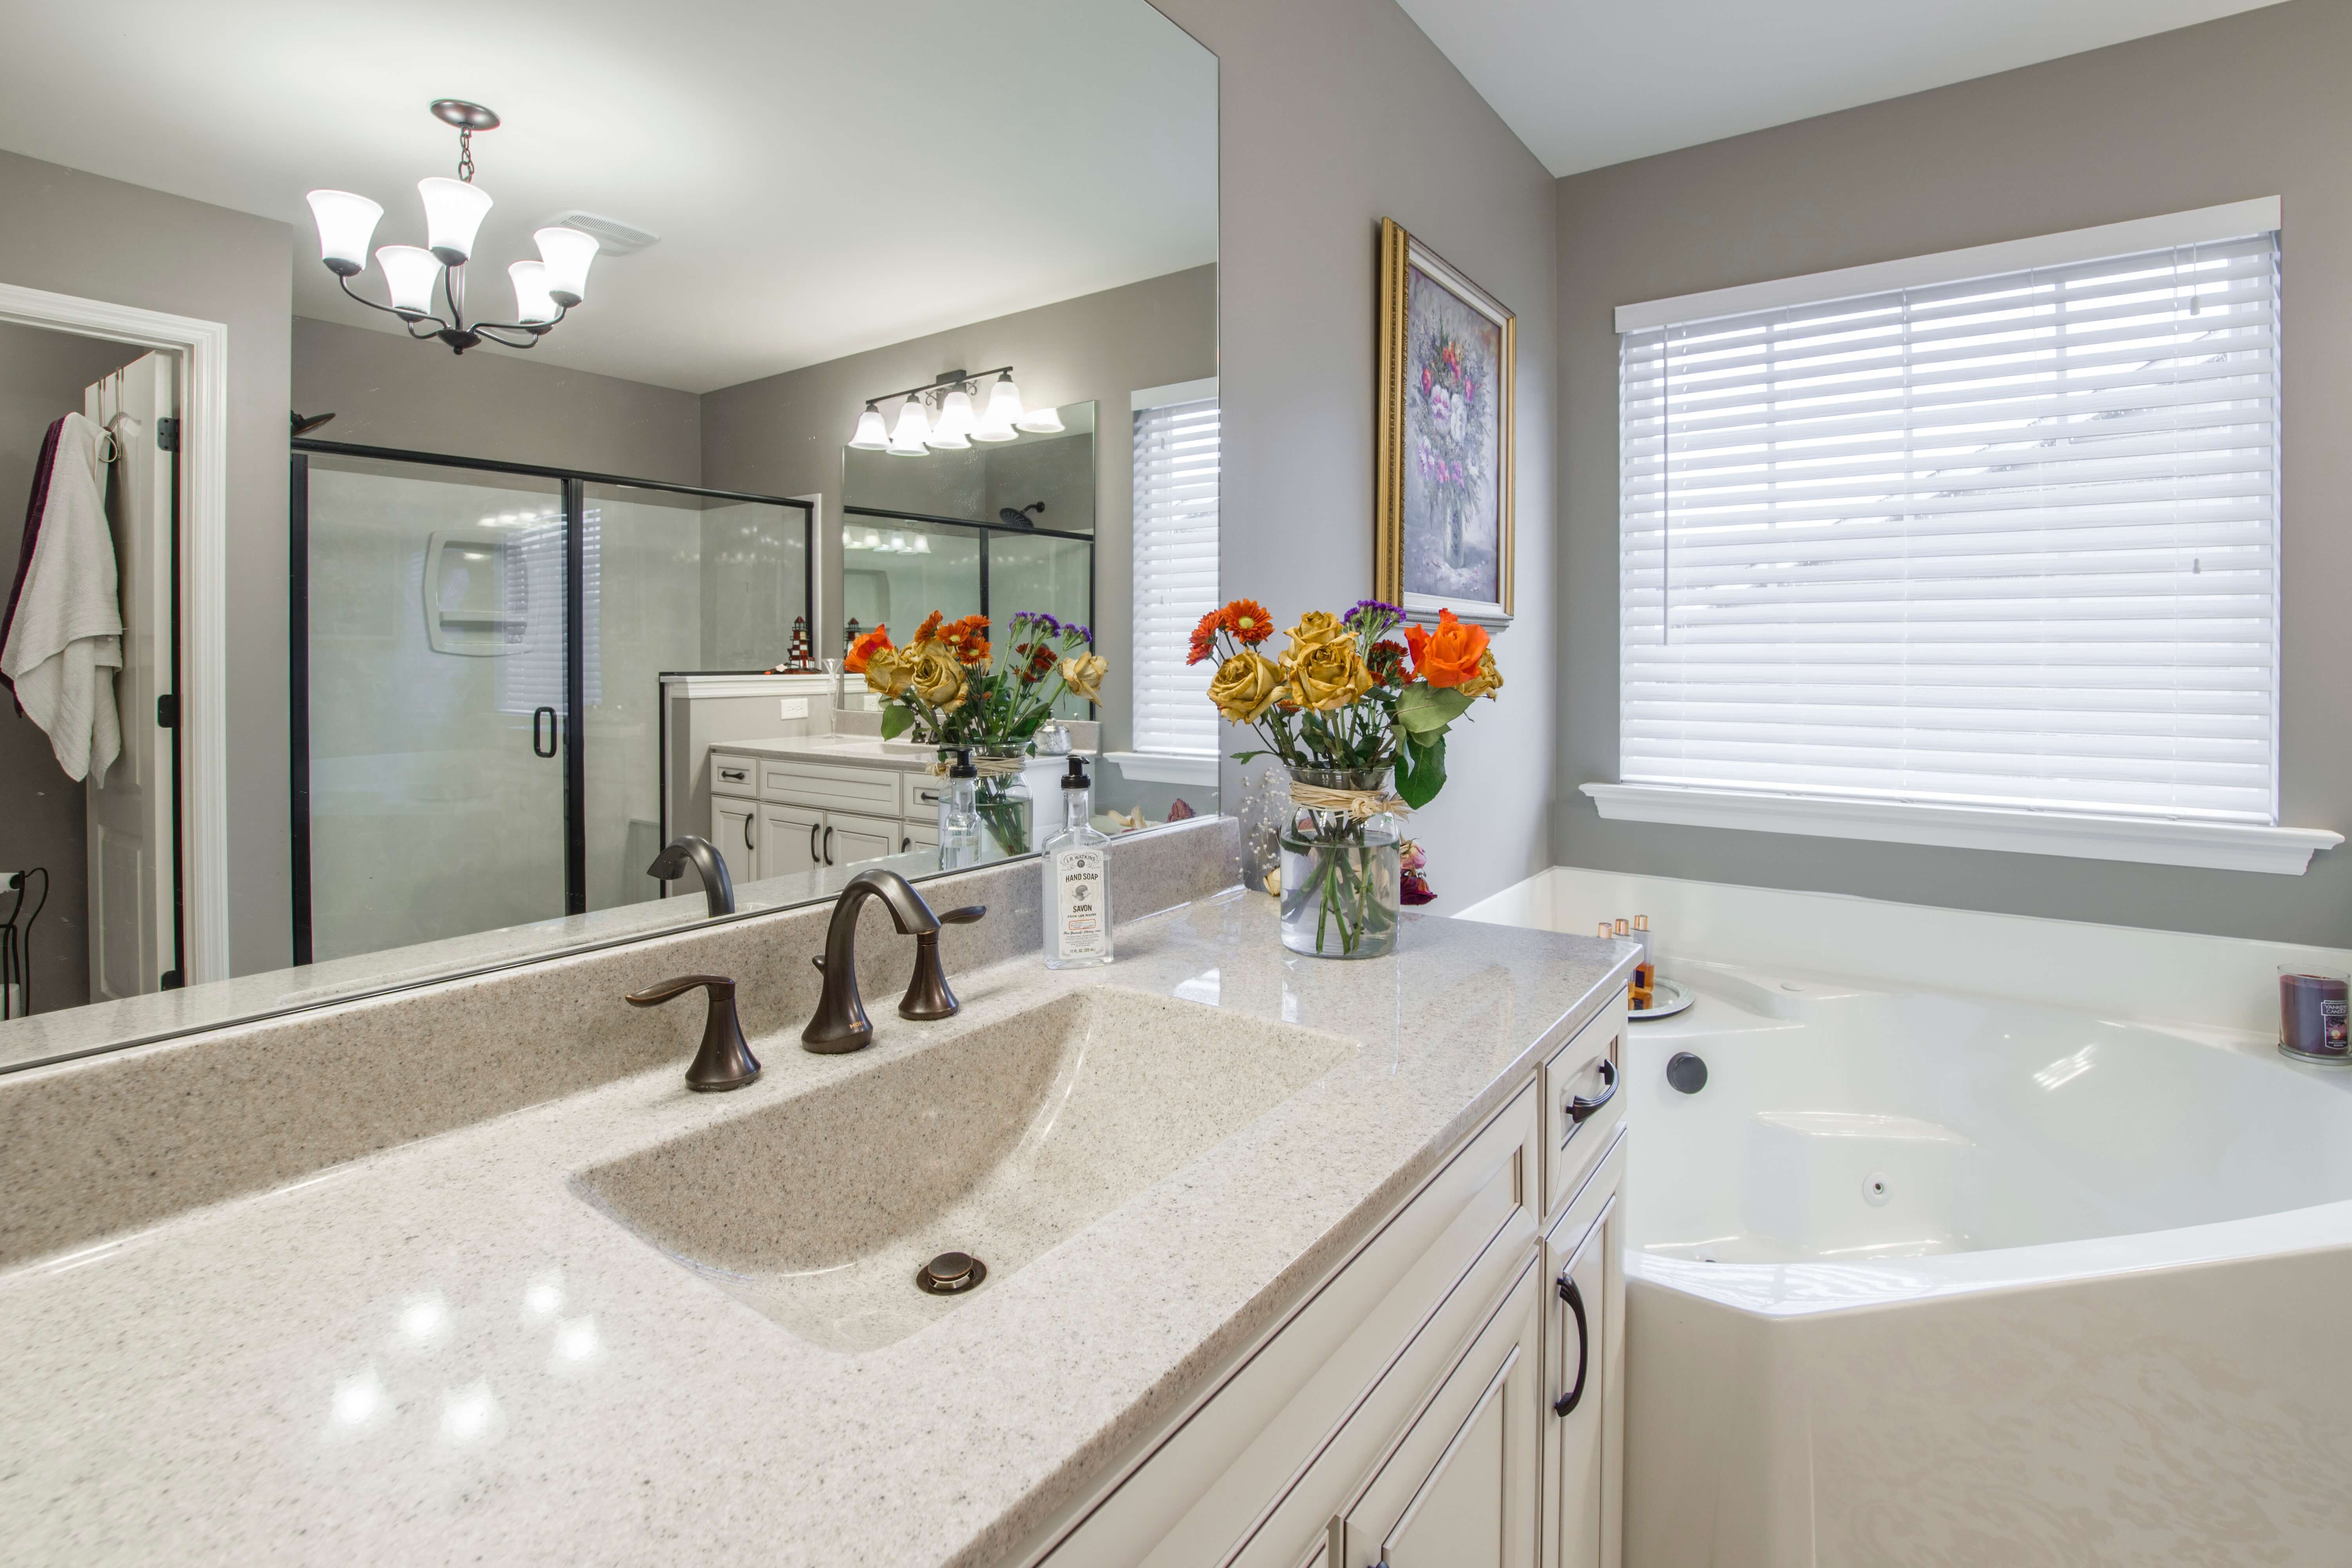 Remodeled bathroom with soaker tub